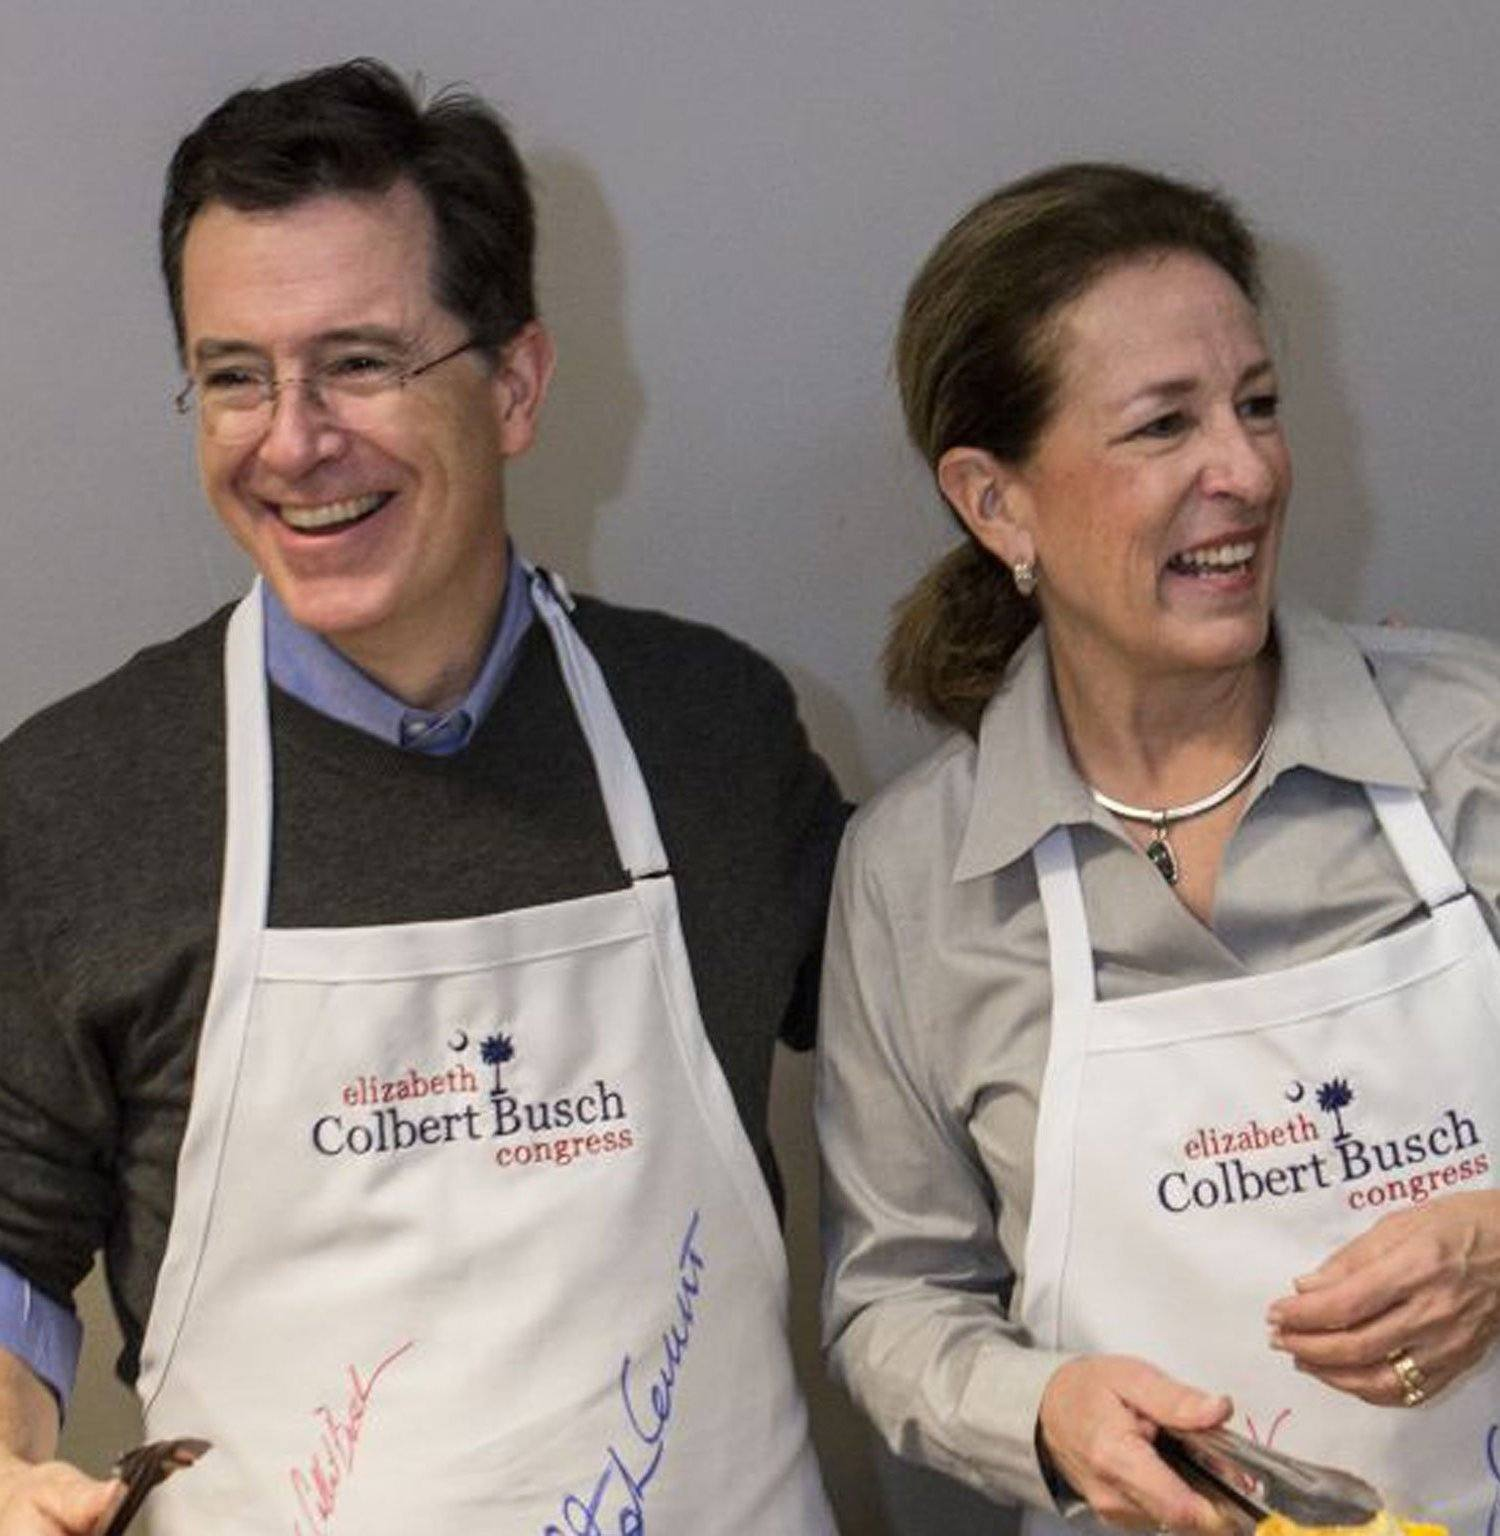 satirist.get 10 Things You Never Knew About Stephen Colbert